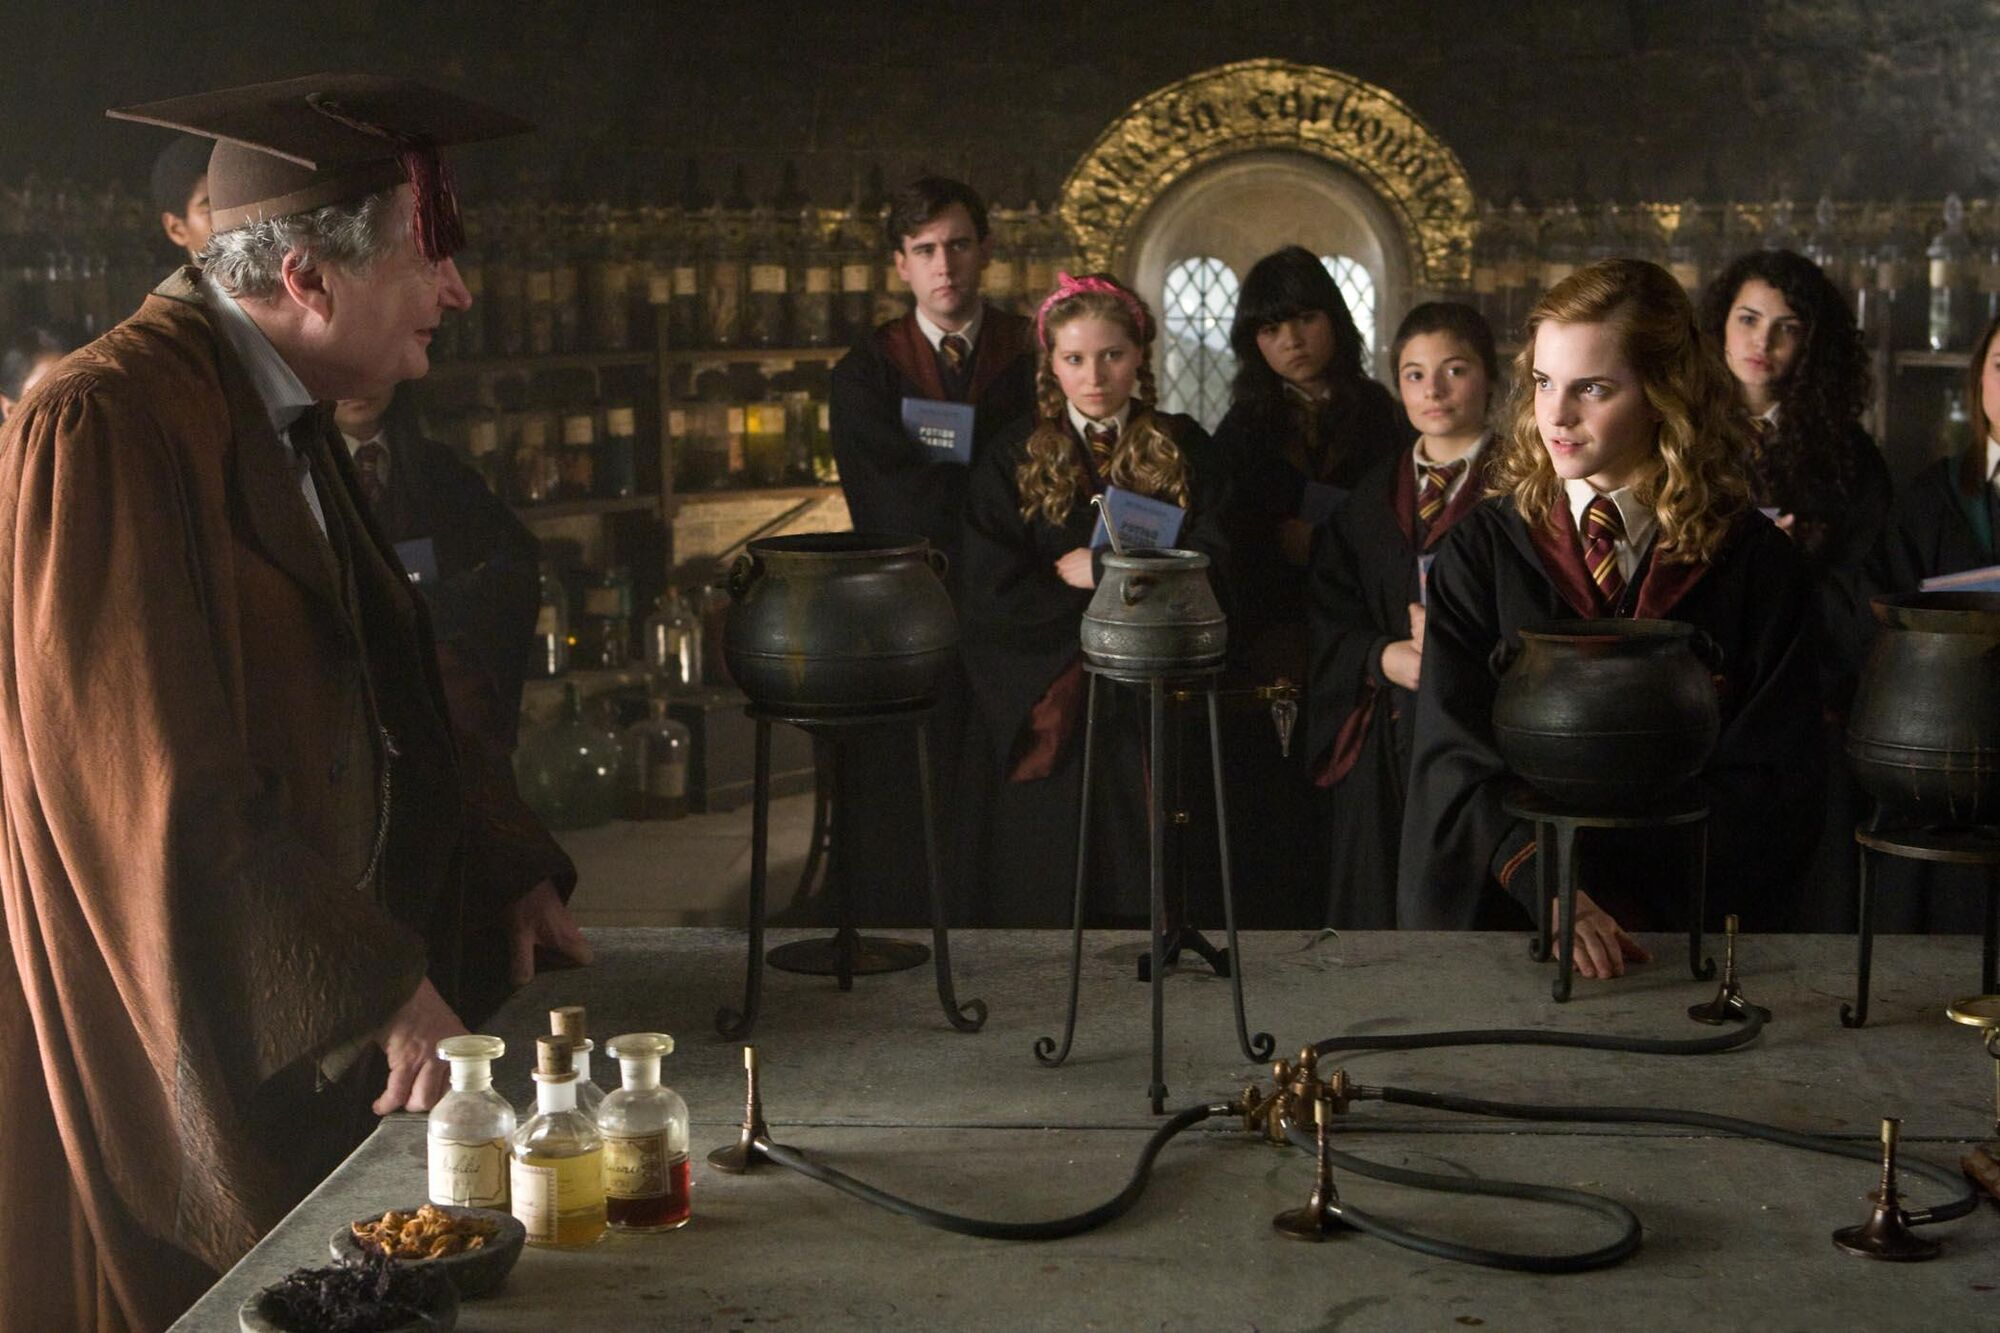 Later J.K. Rowling put fascinating spells on people all over the world.